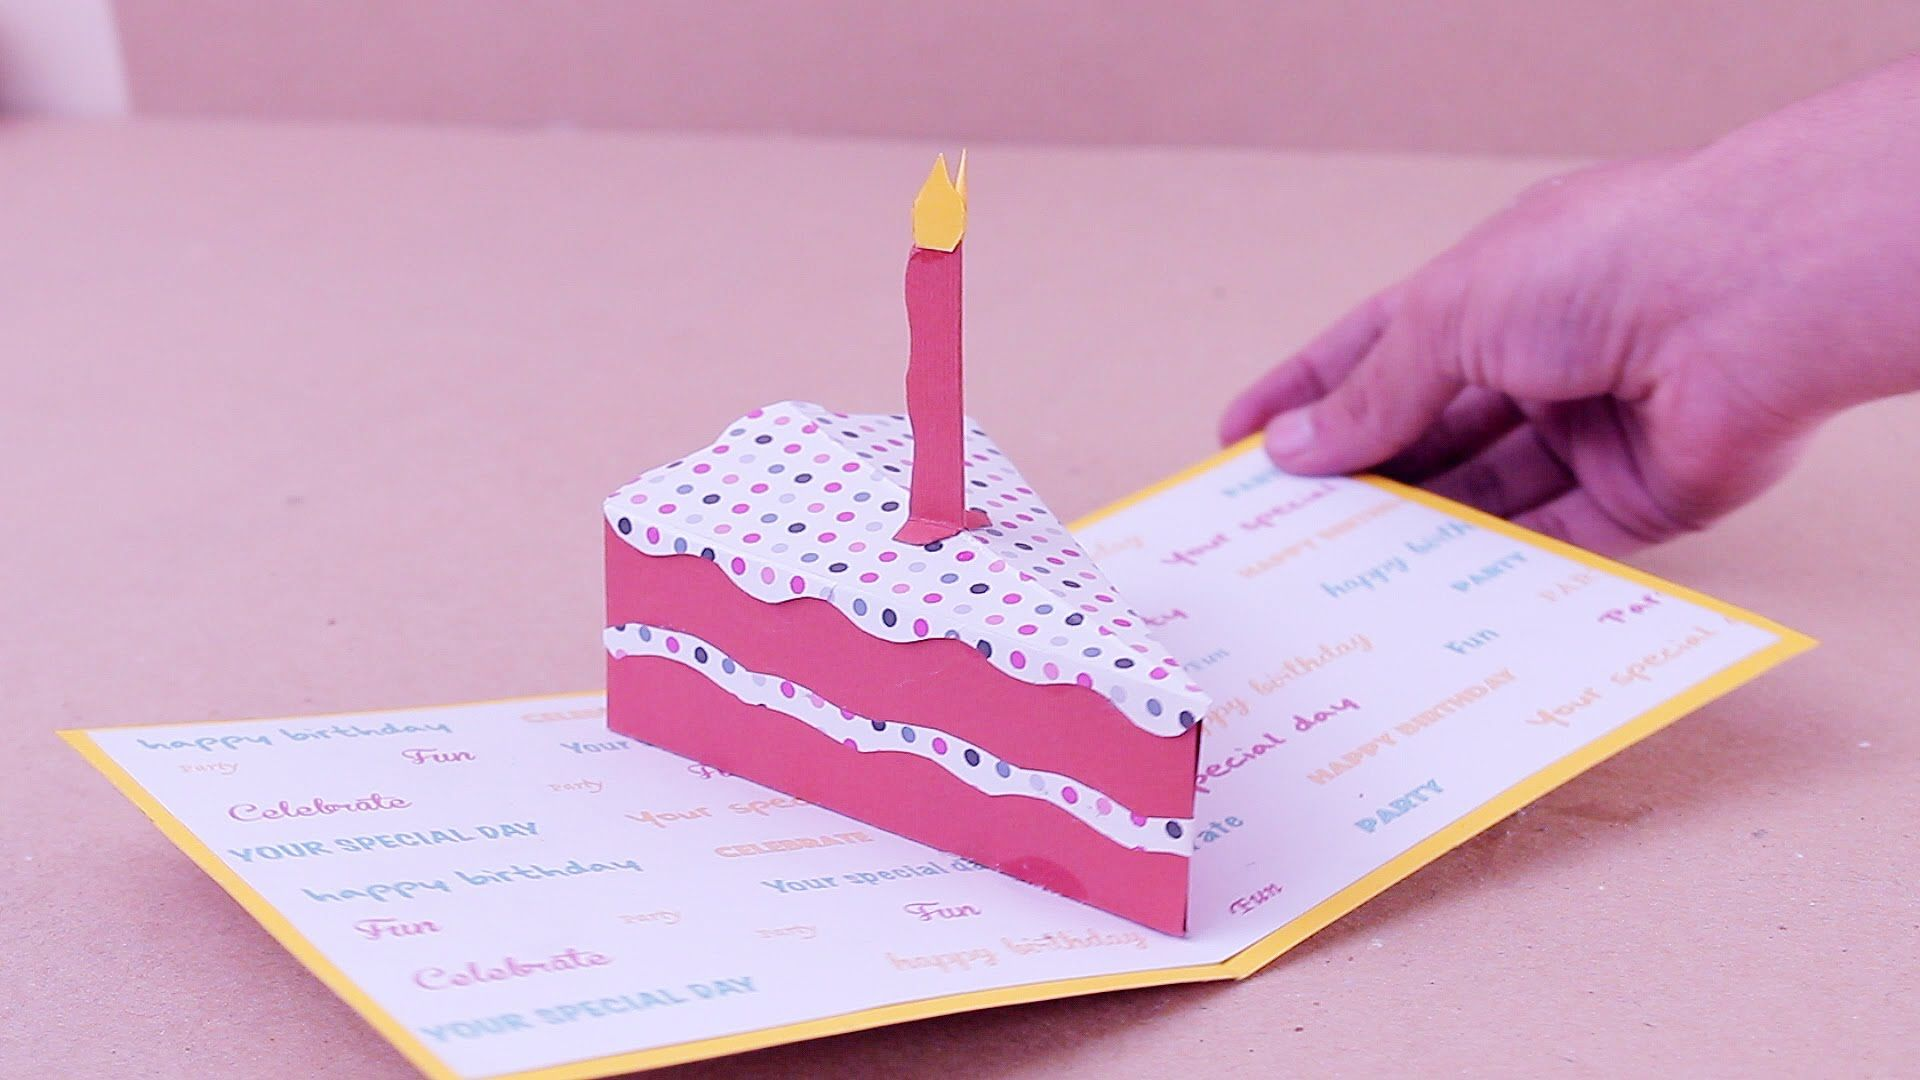 Pin By Martishka78 On Pop Up Pinterest Pop Up Cards And Pop Up